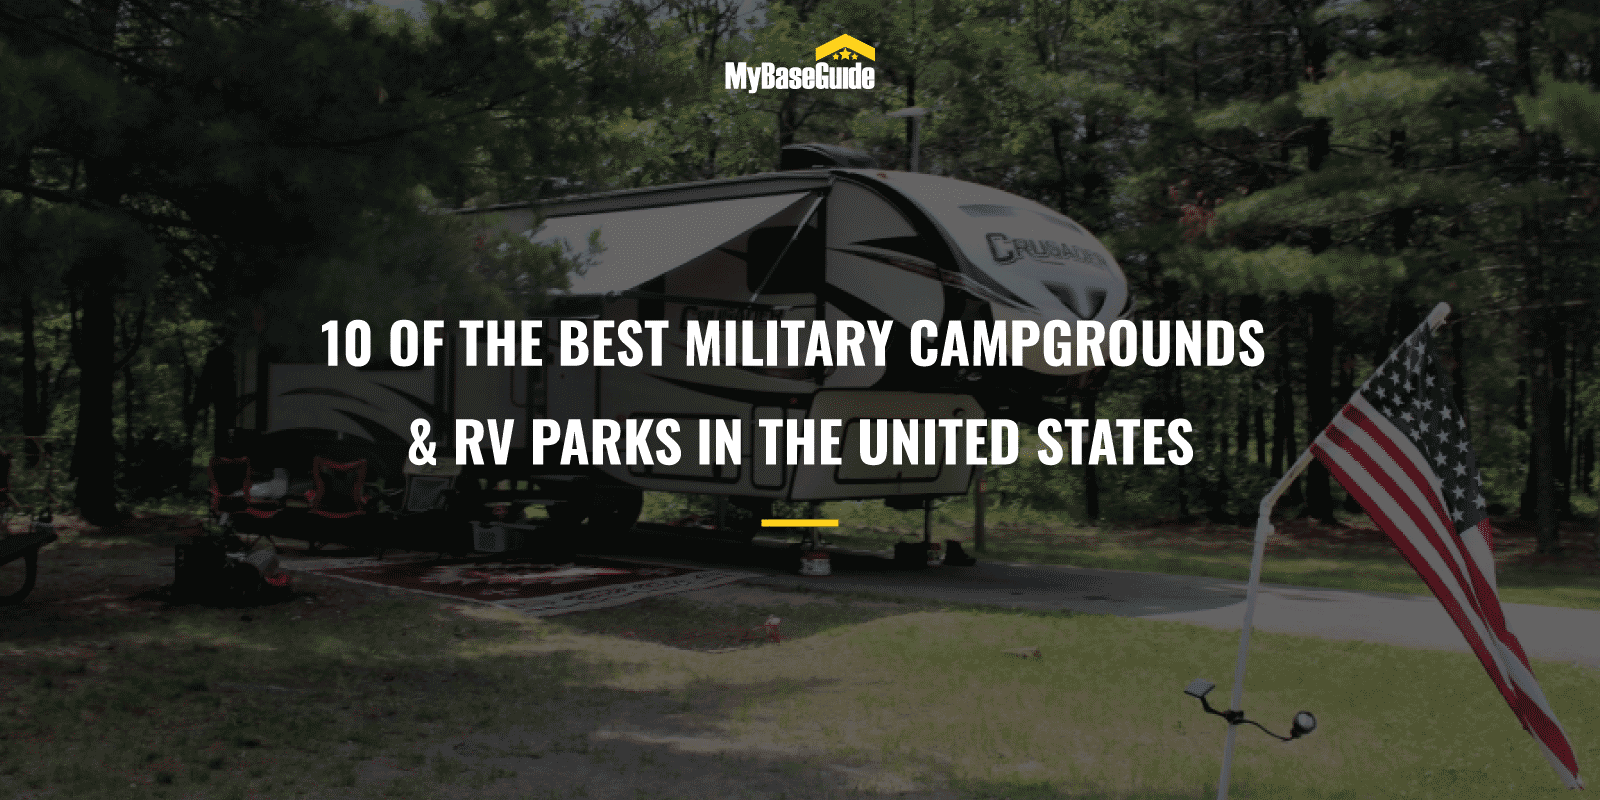 10 of the Best Military Campgrounds & RV Parks in the United States